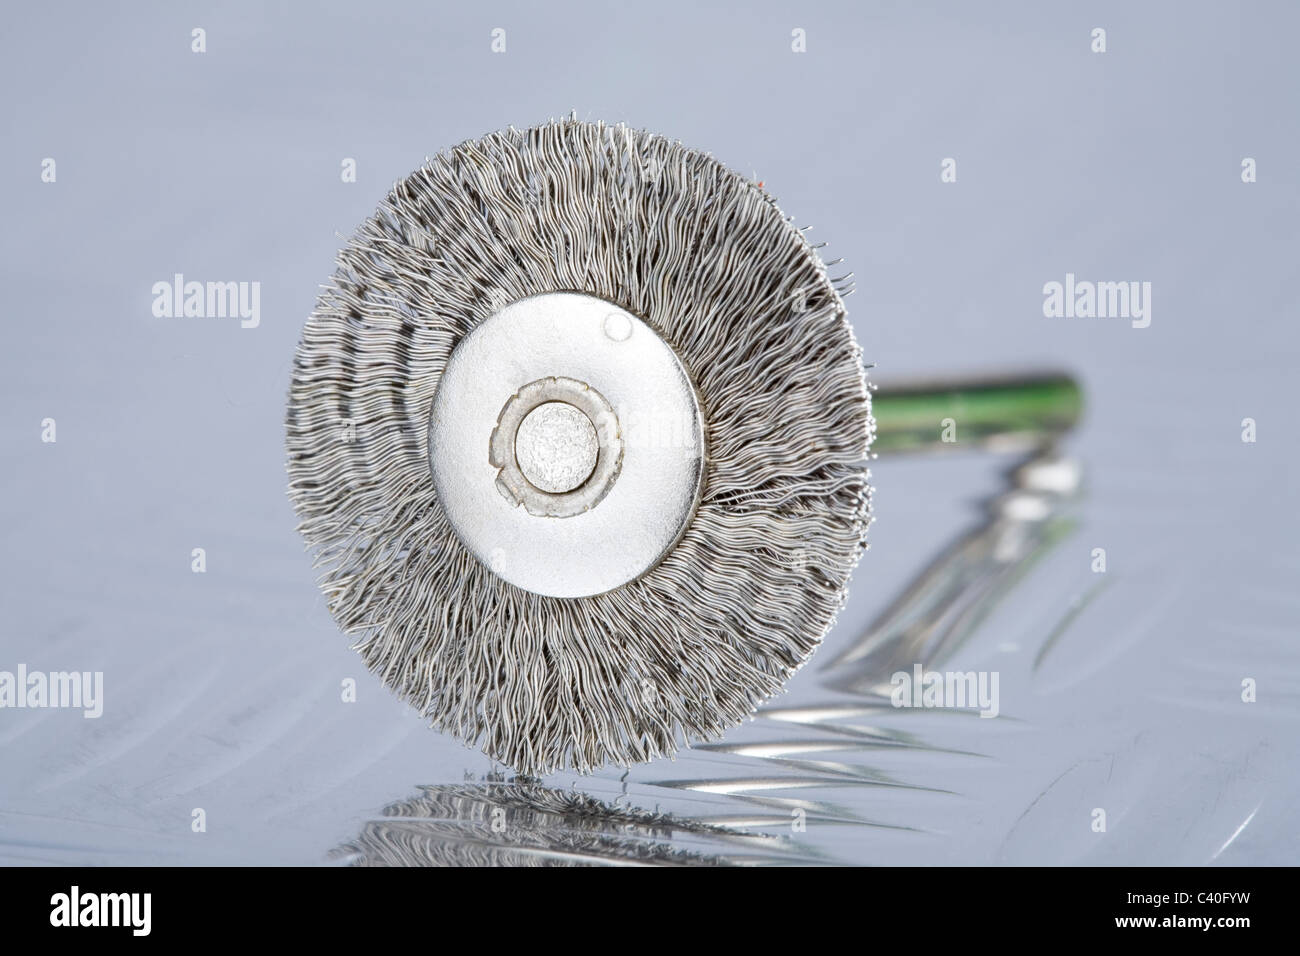 Wire Brush Stockfotos & Wire Brush Bilder - Alamy